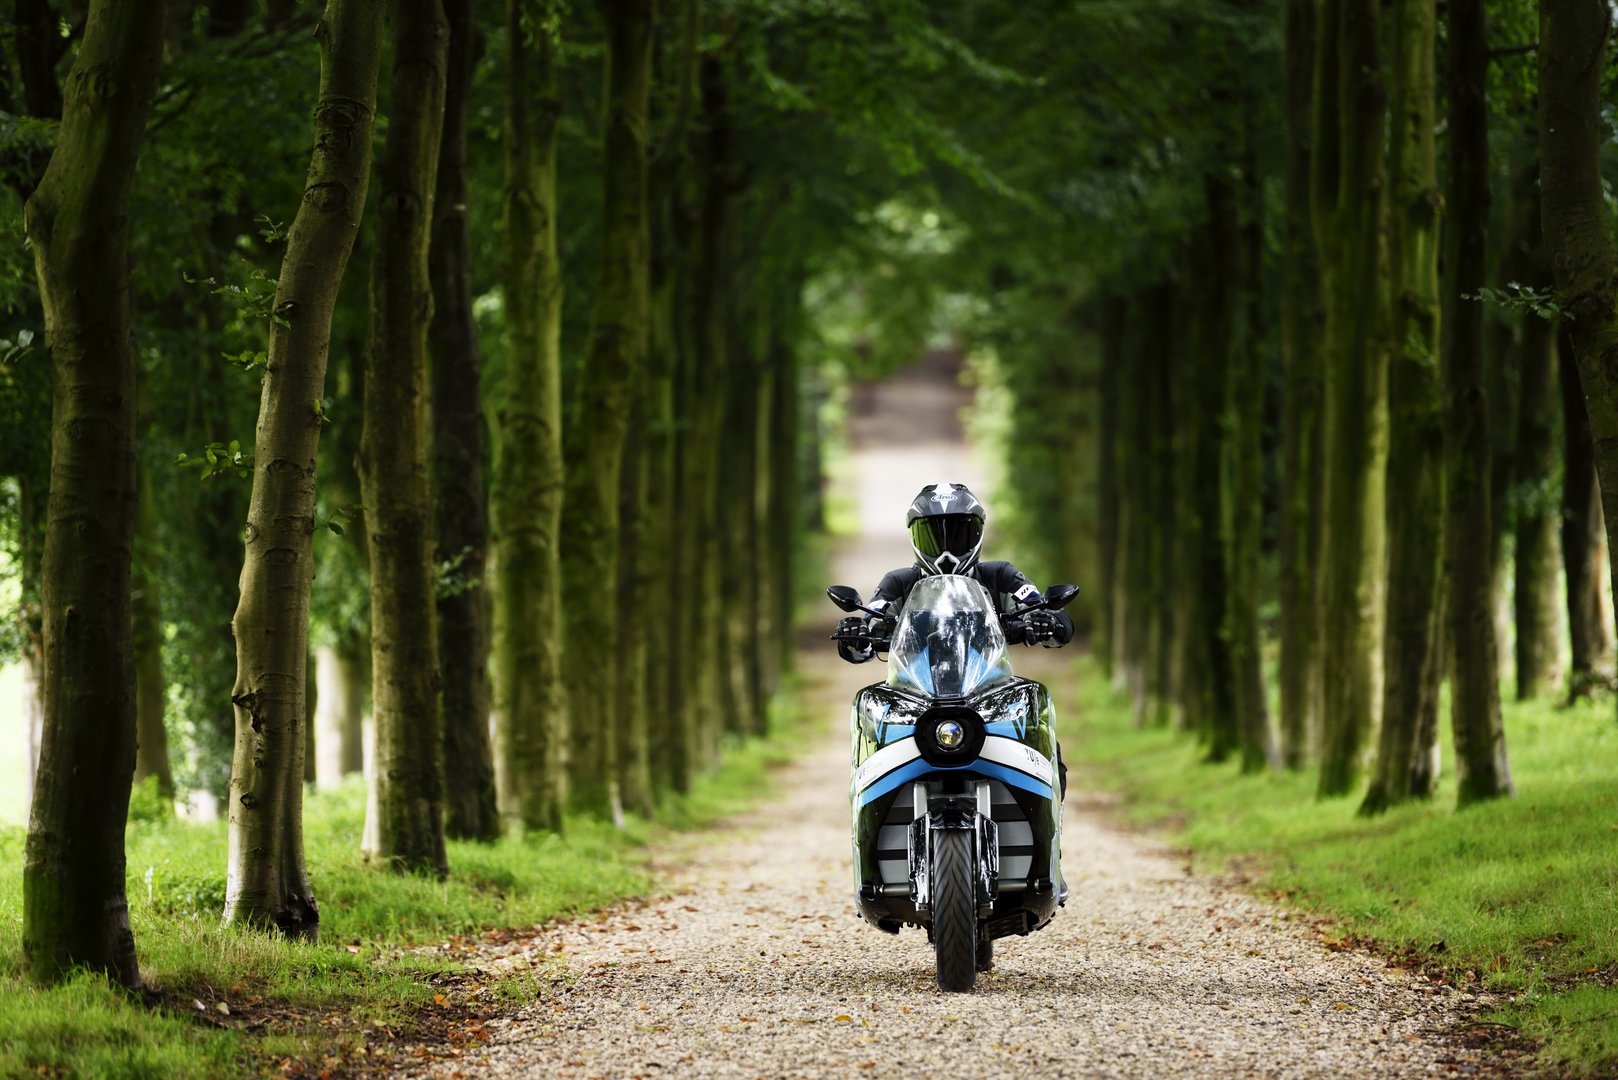 Around the world in 80 days with an electric motorcycle